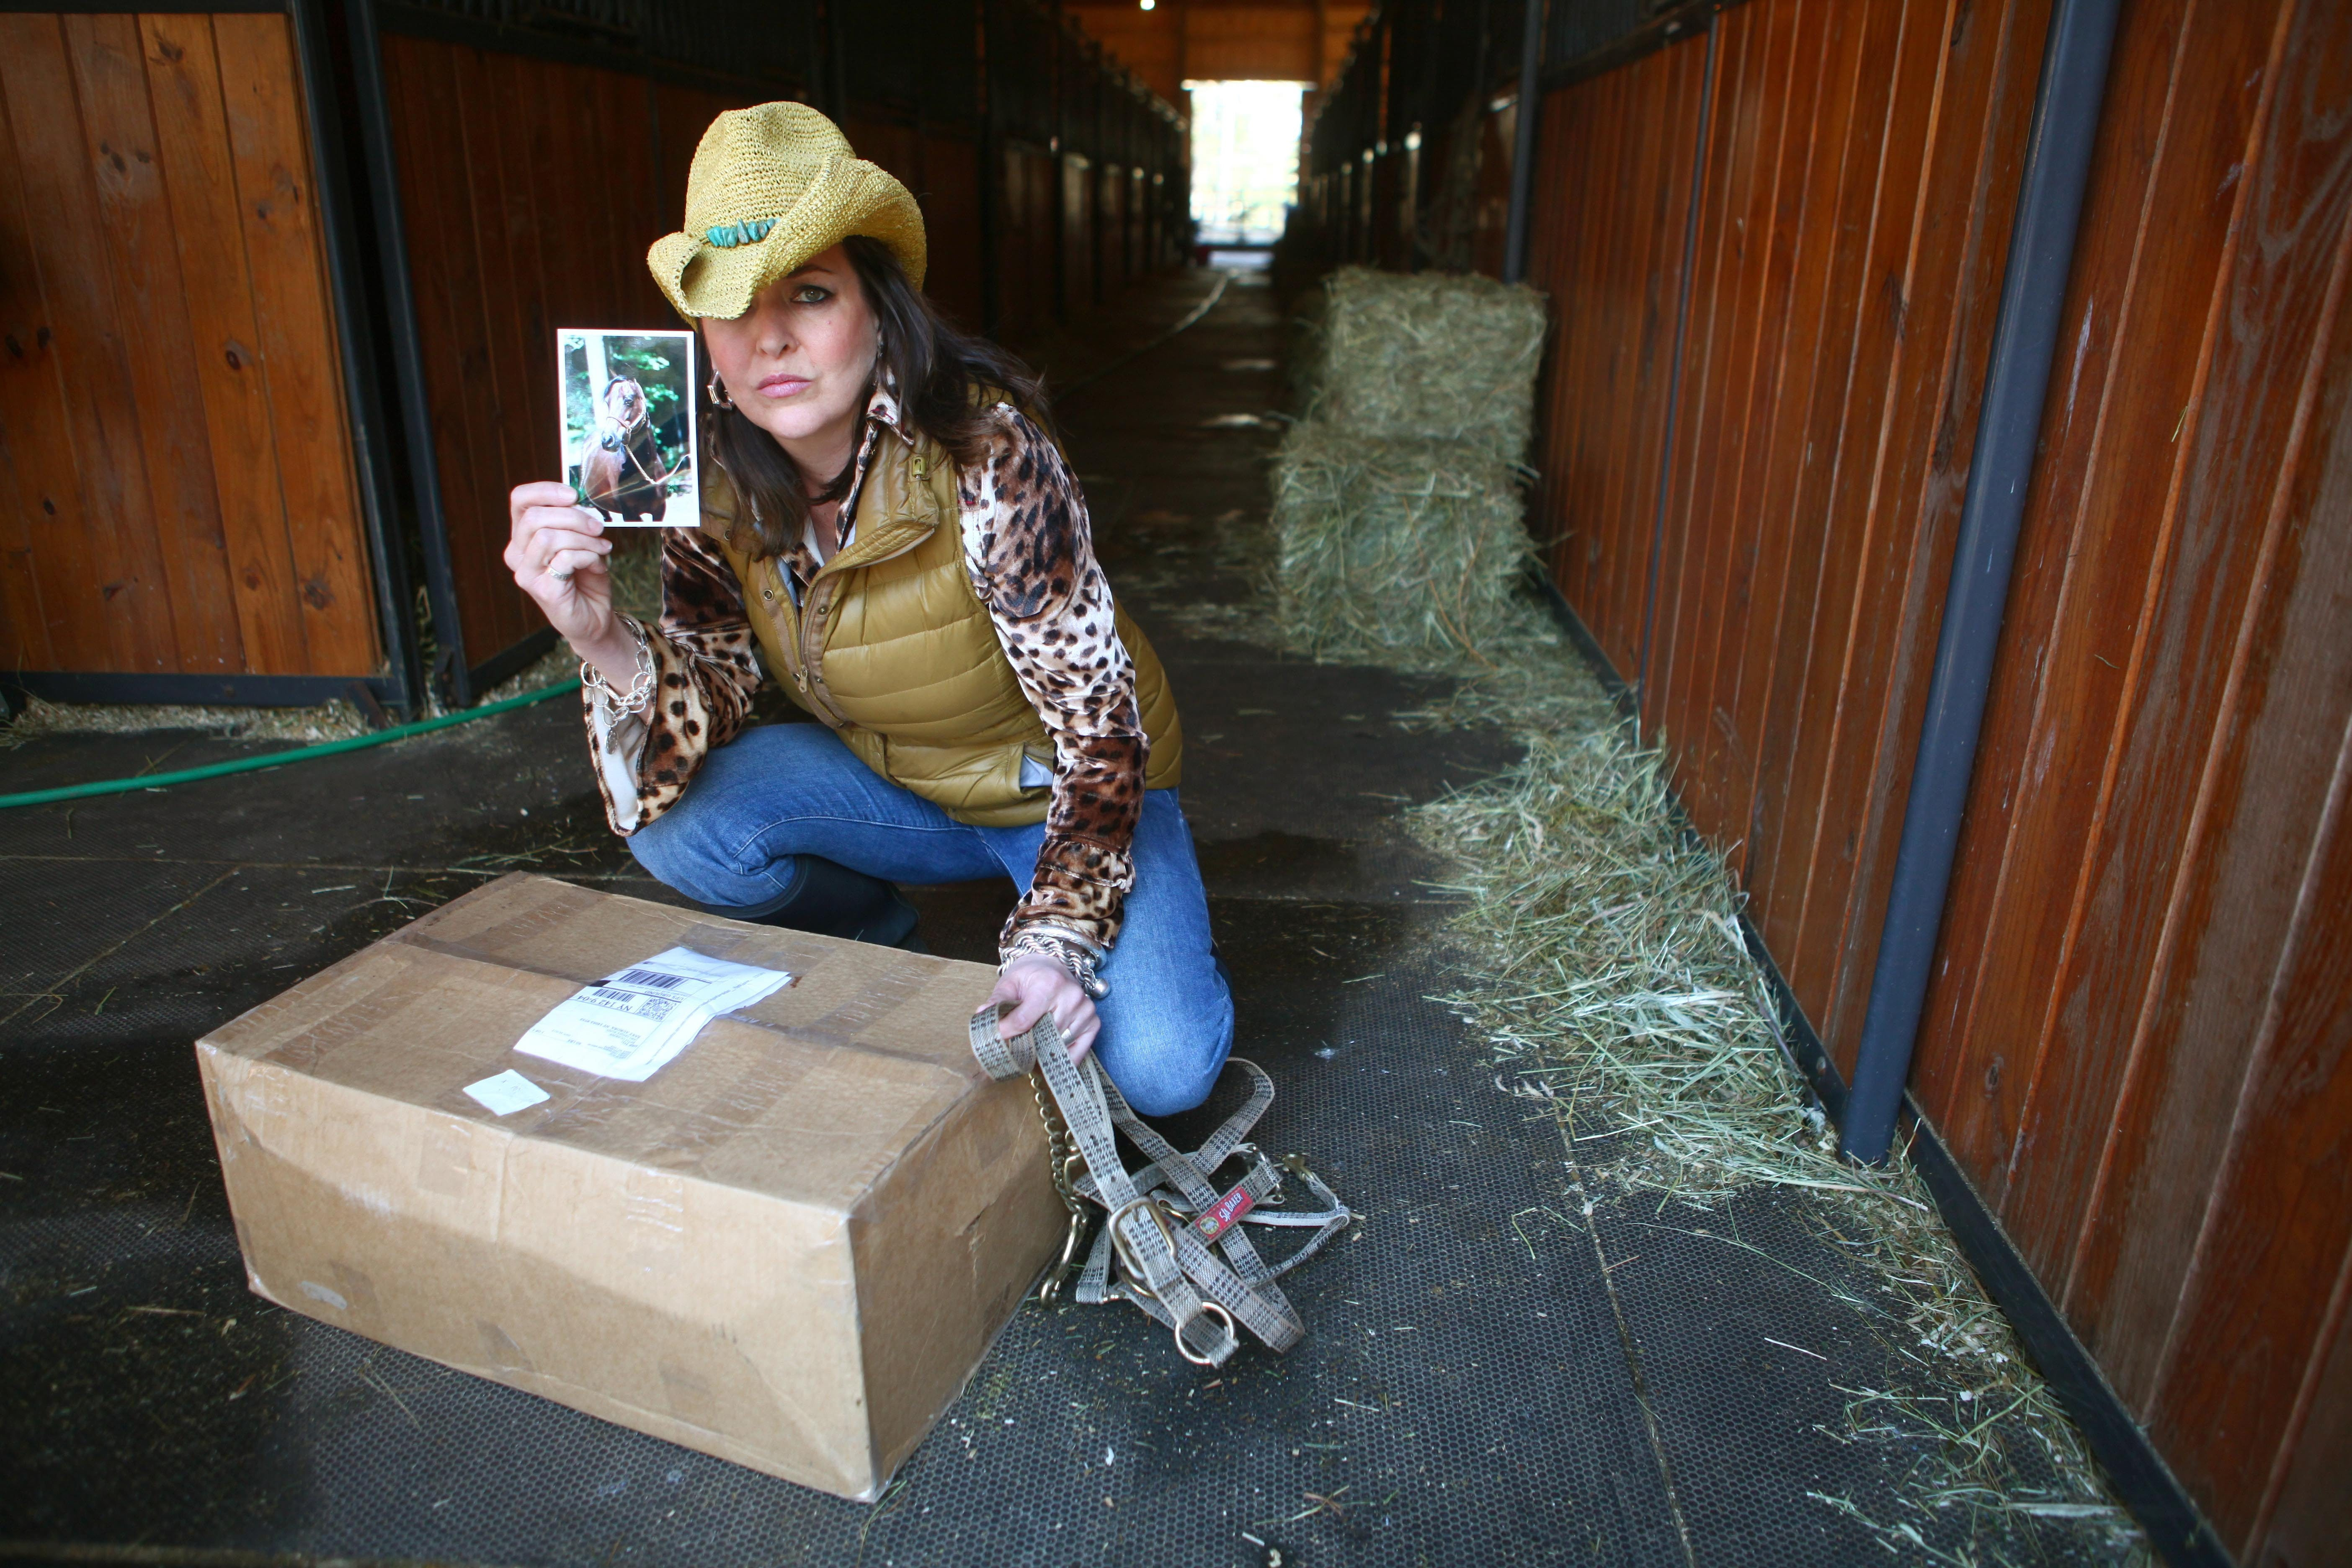 Beth Lynn Hoskins, in 2012, holds sentimental photograph as she kneels beside box containing ashes of one of her horses that died. Her trial on animal-cruelty charges is being delayed amid continuing accusations of prosecutorial misconduct.